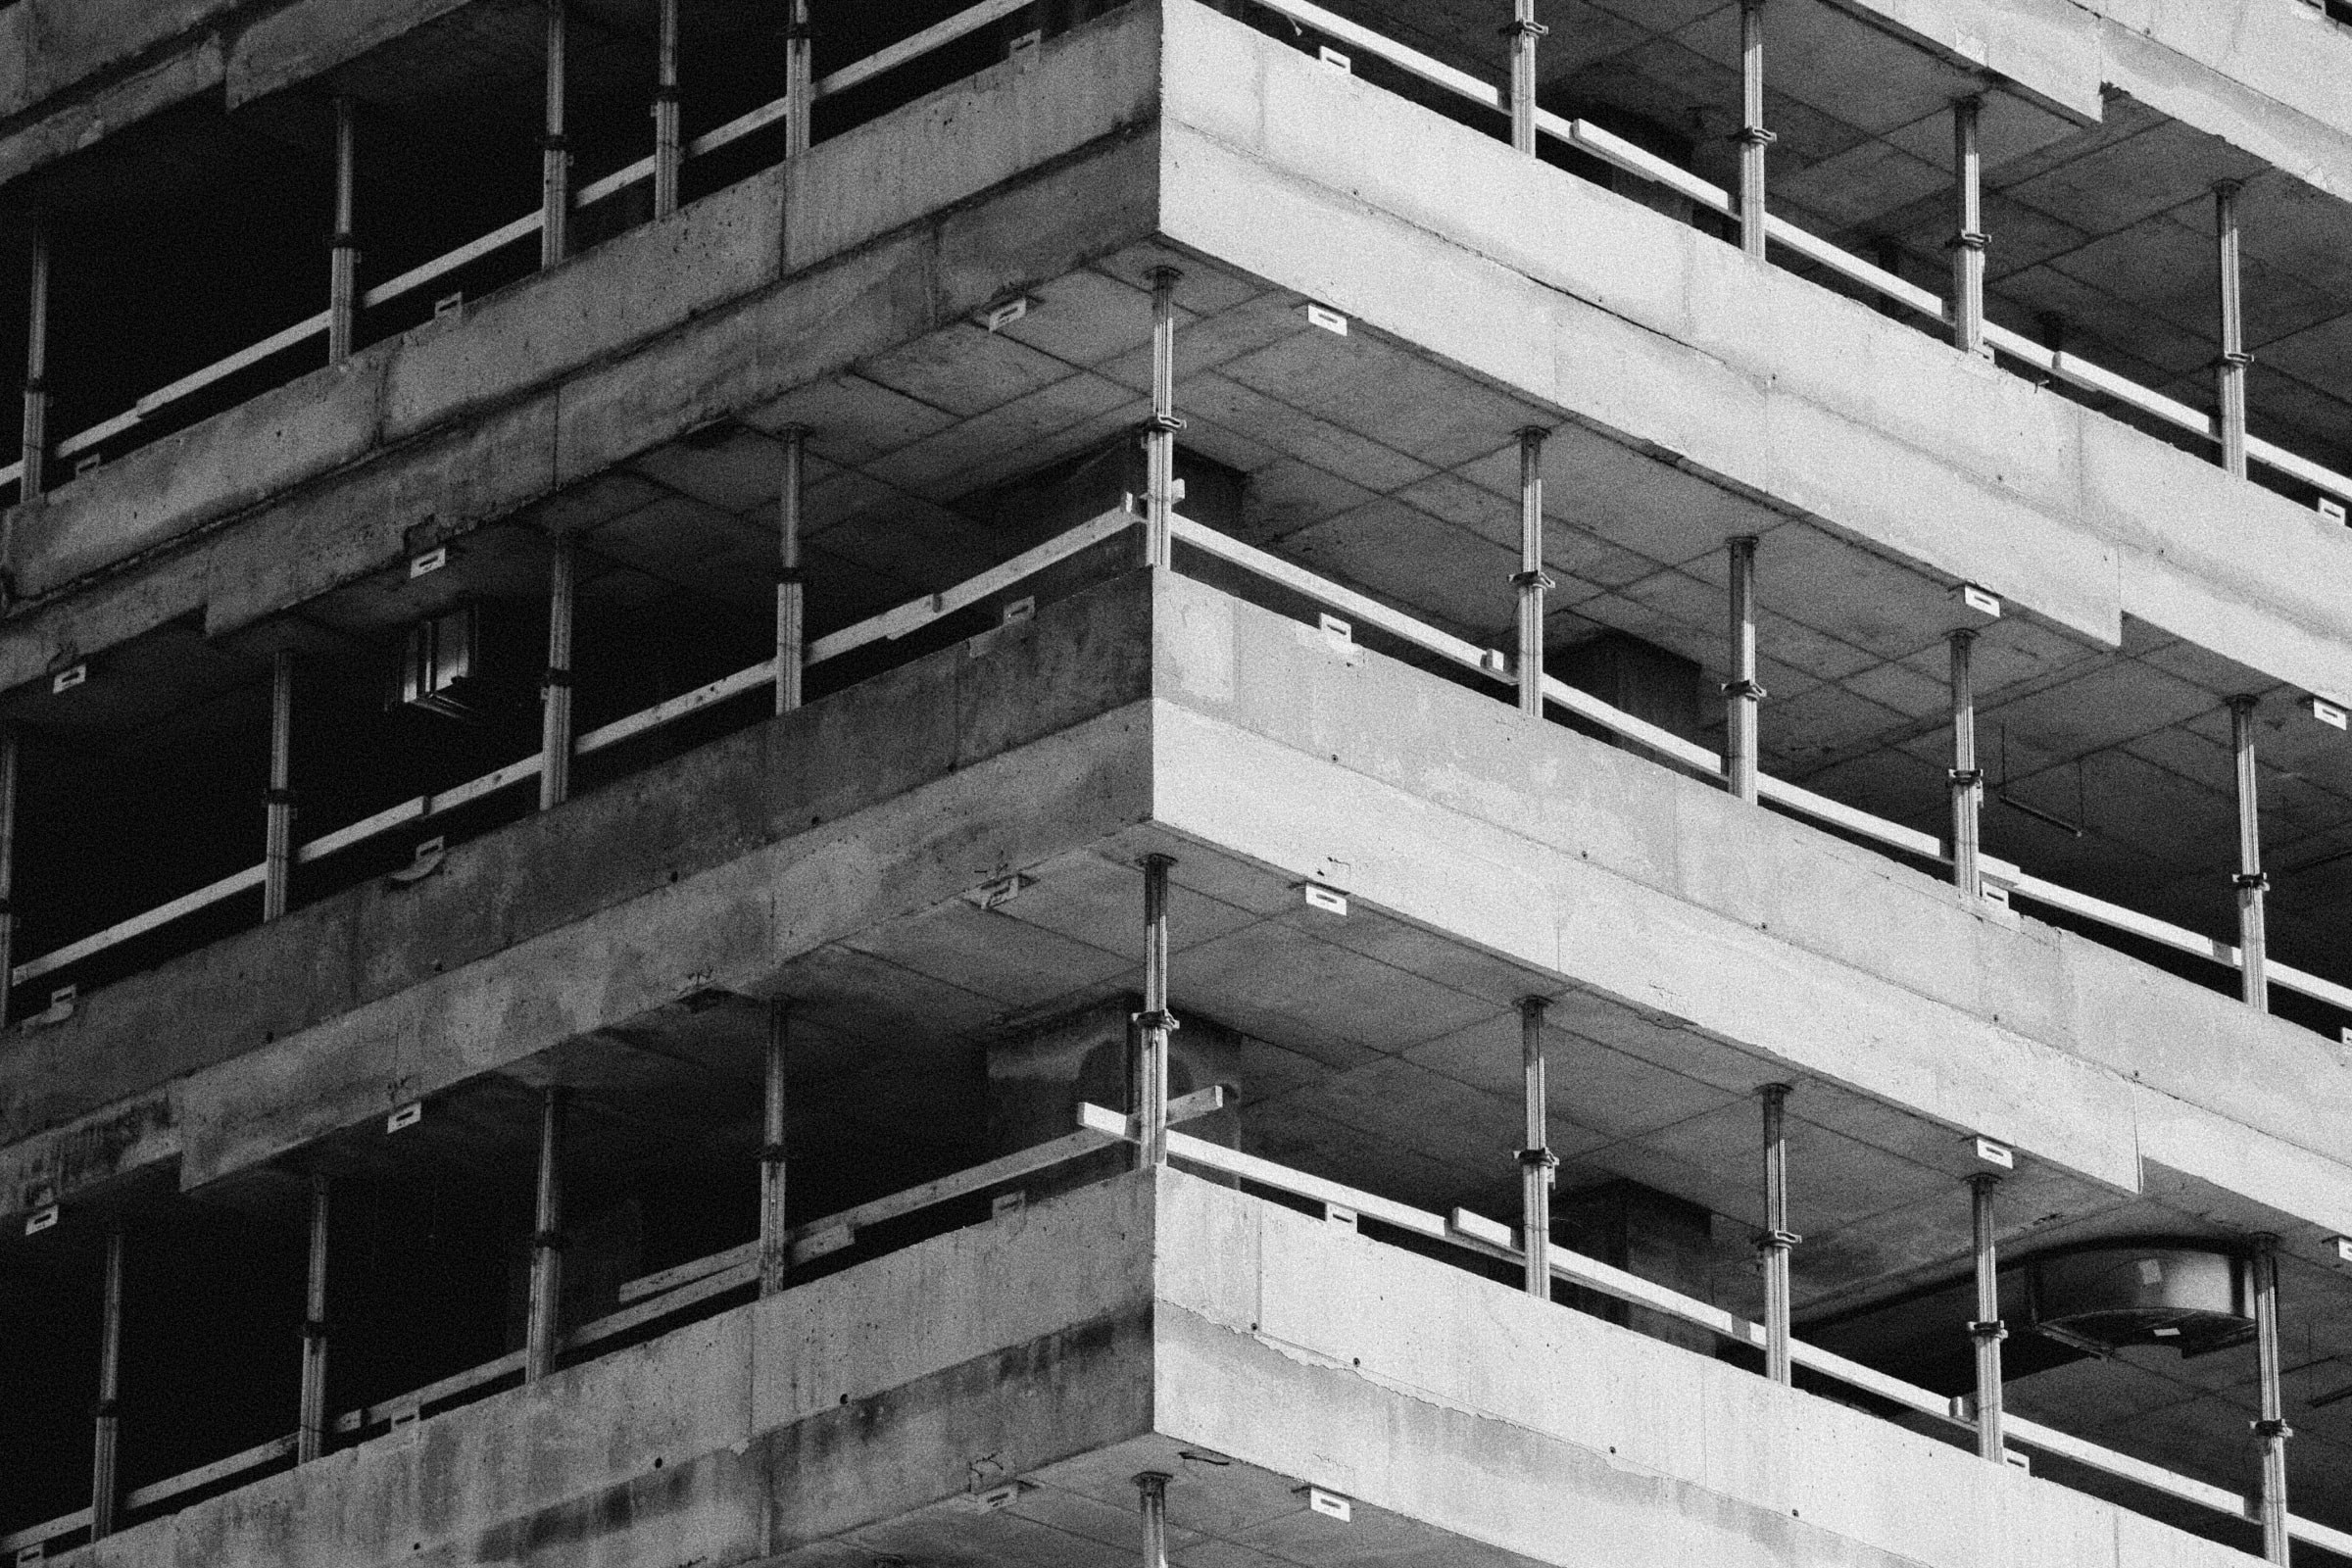 A building under construciton. With very visible basic elements of concrete and support structures.